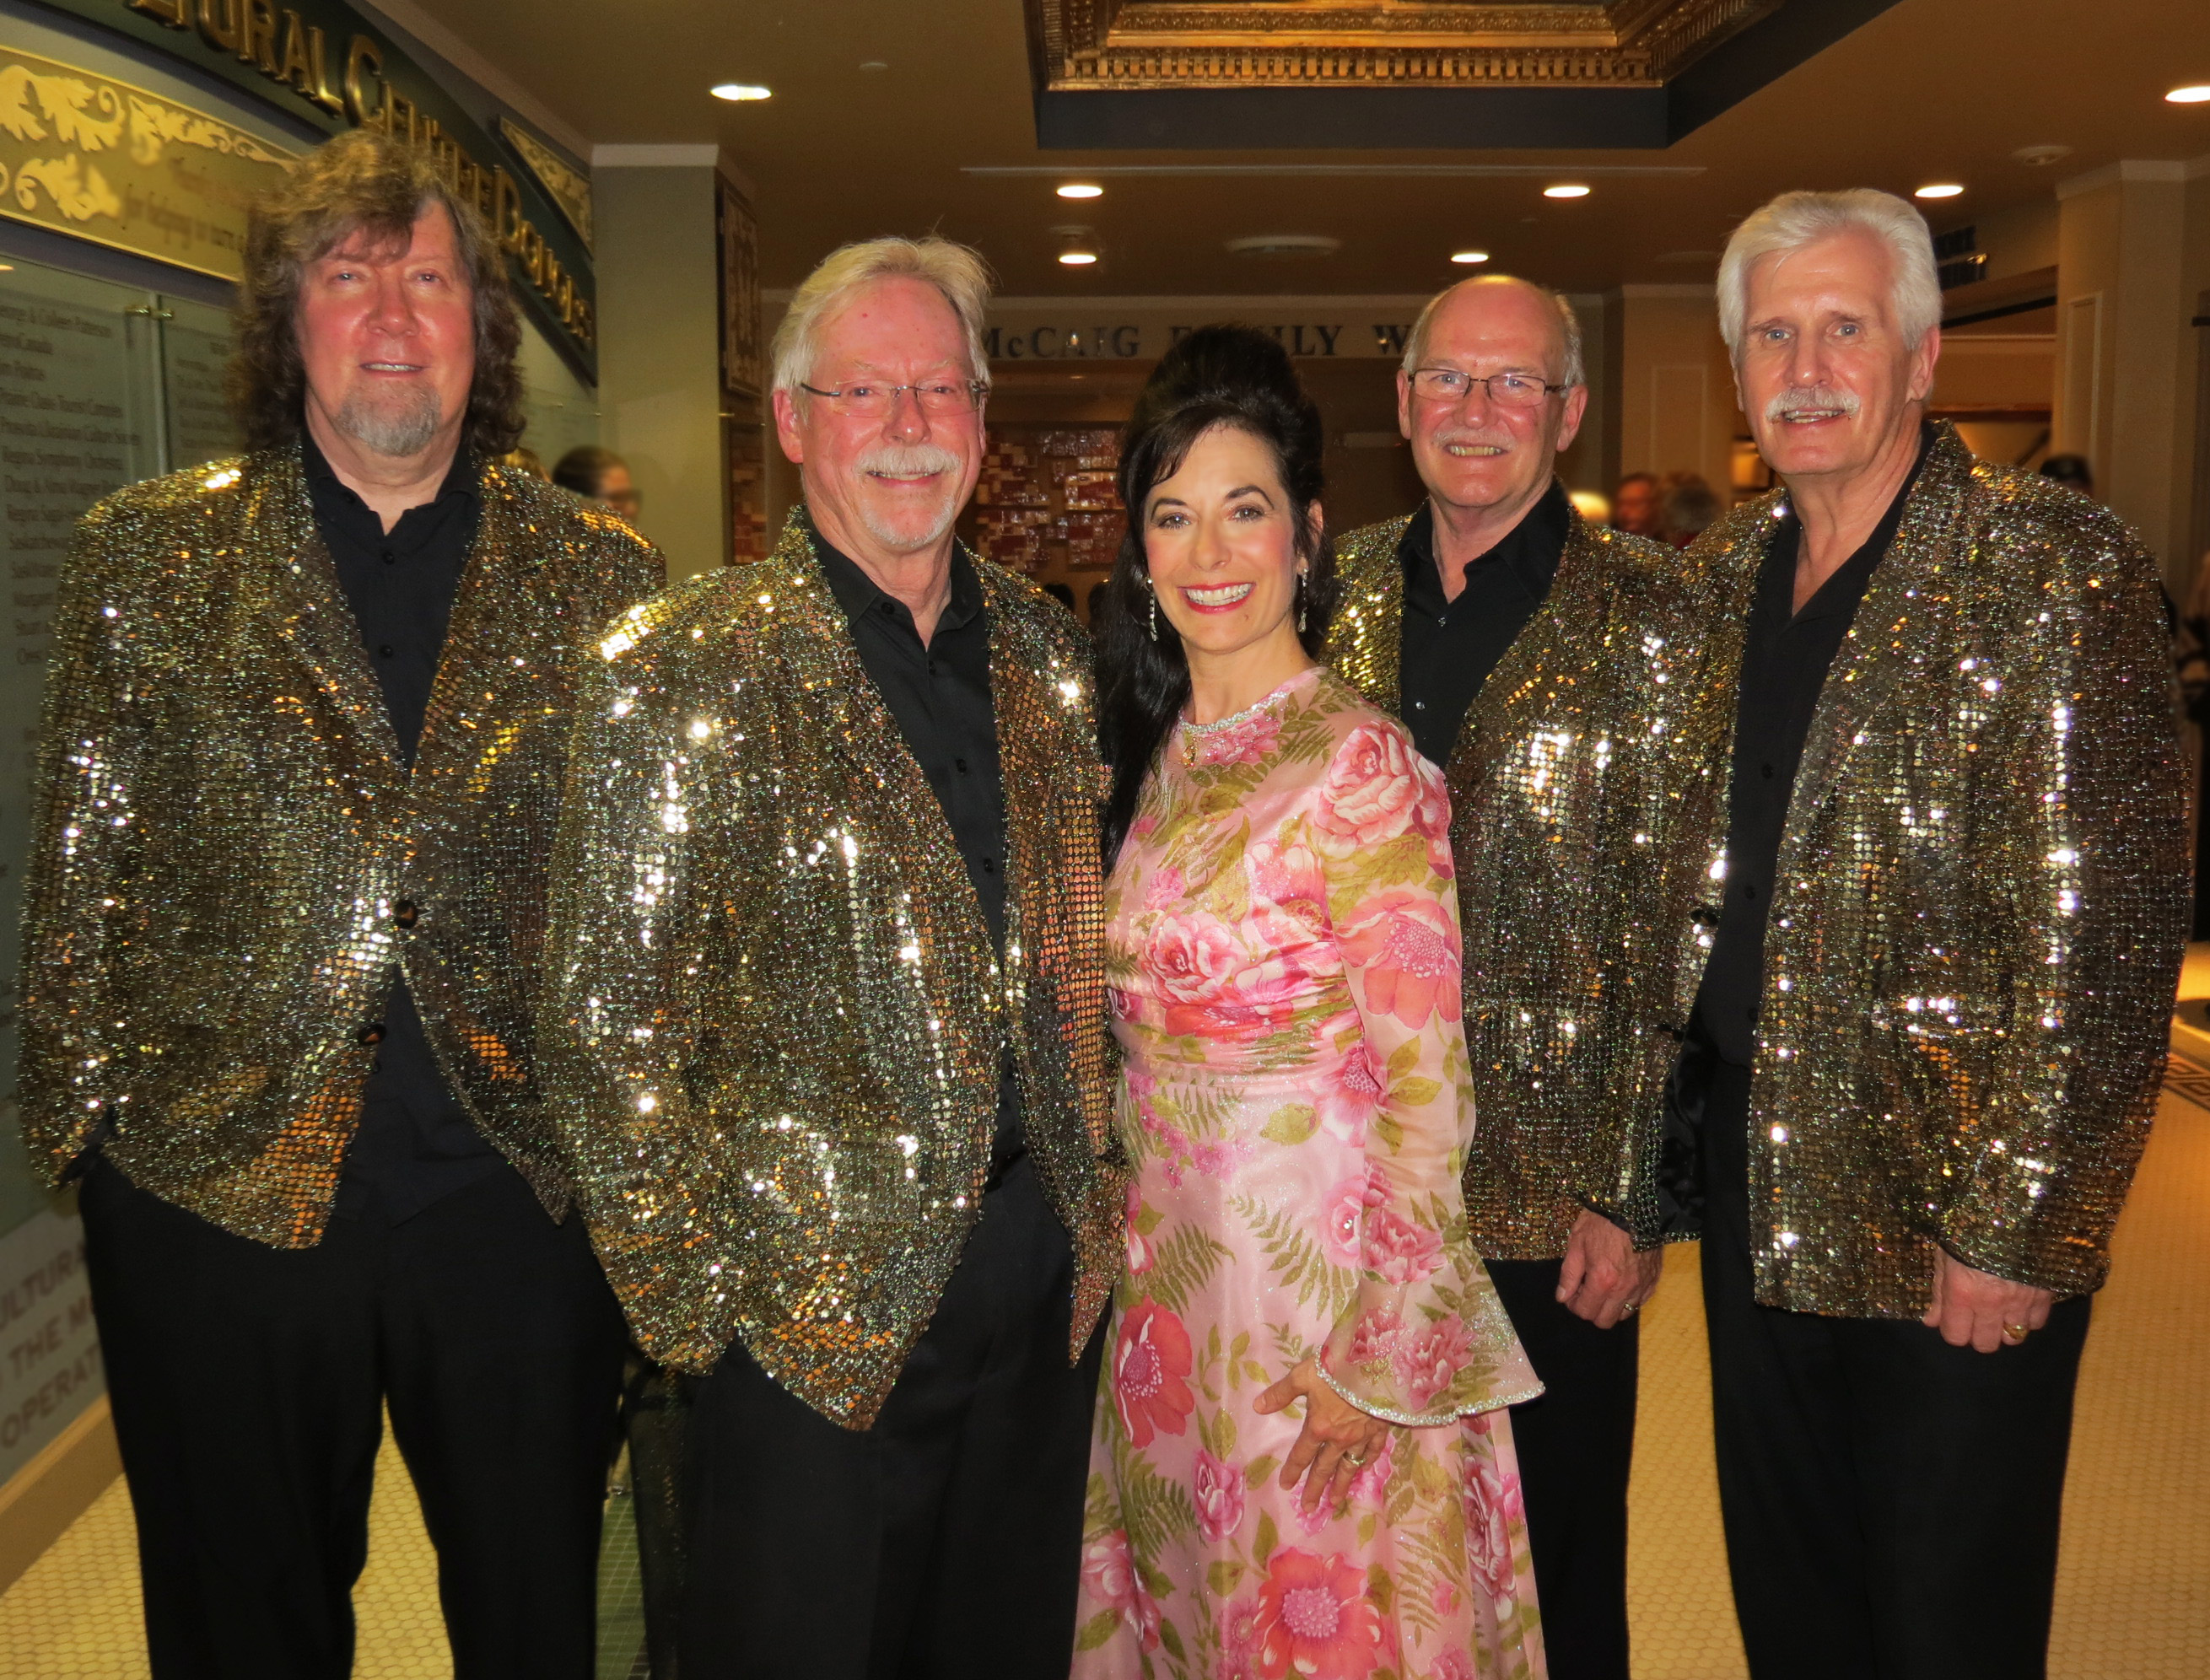 Brenda Lee Cottrell & The Legends